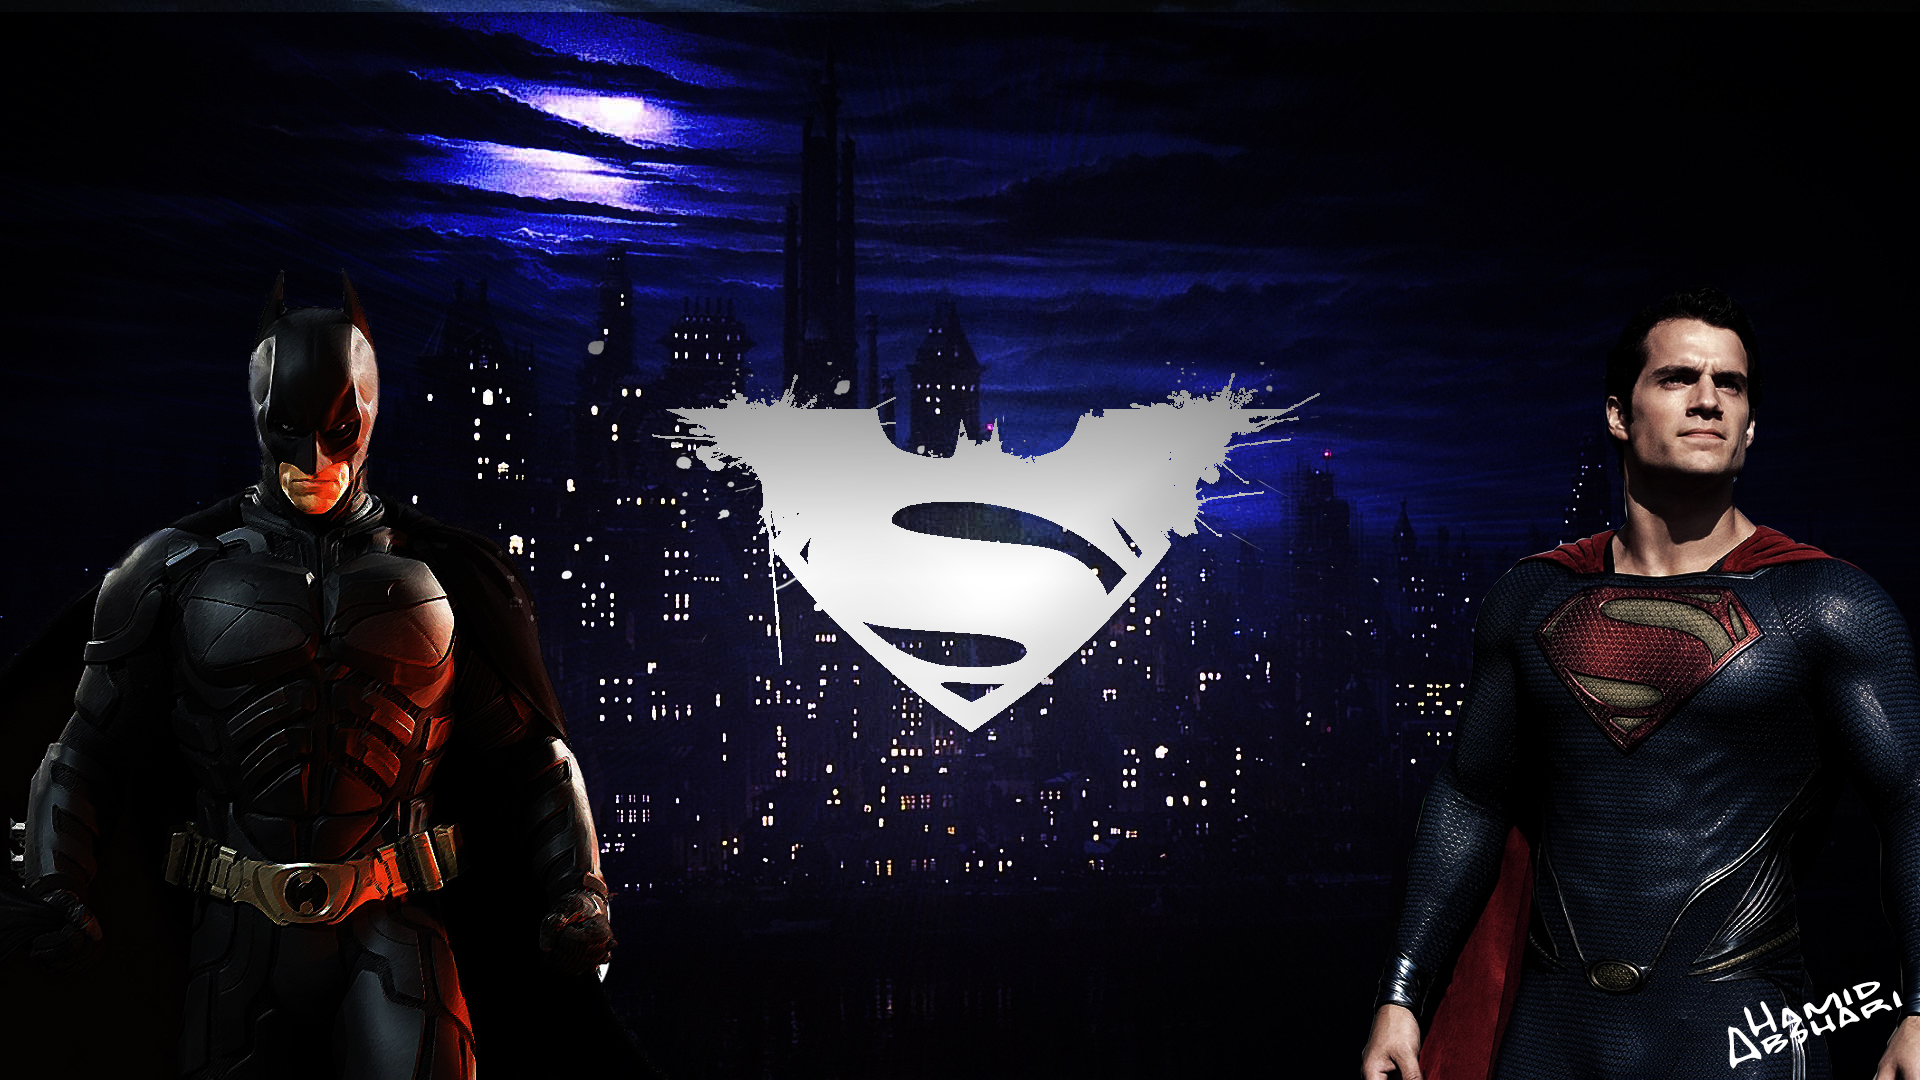 batman vs superman wallpaper by hamidabshari fan art wallpaper movies 1920x1080